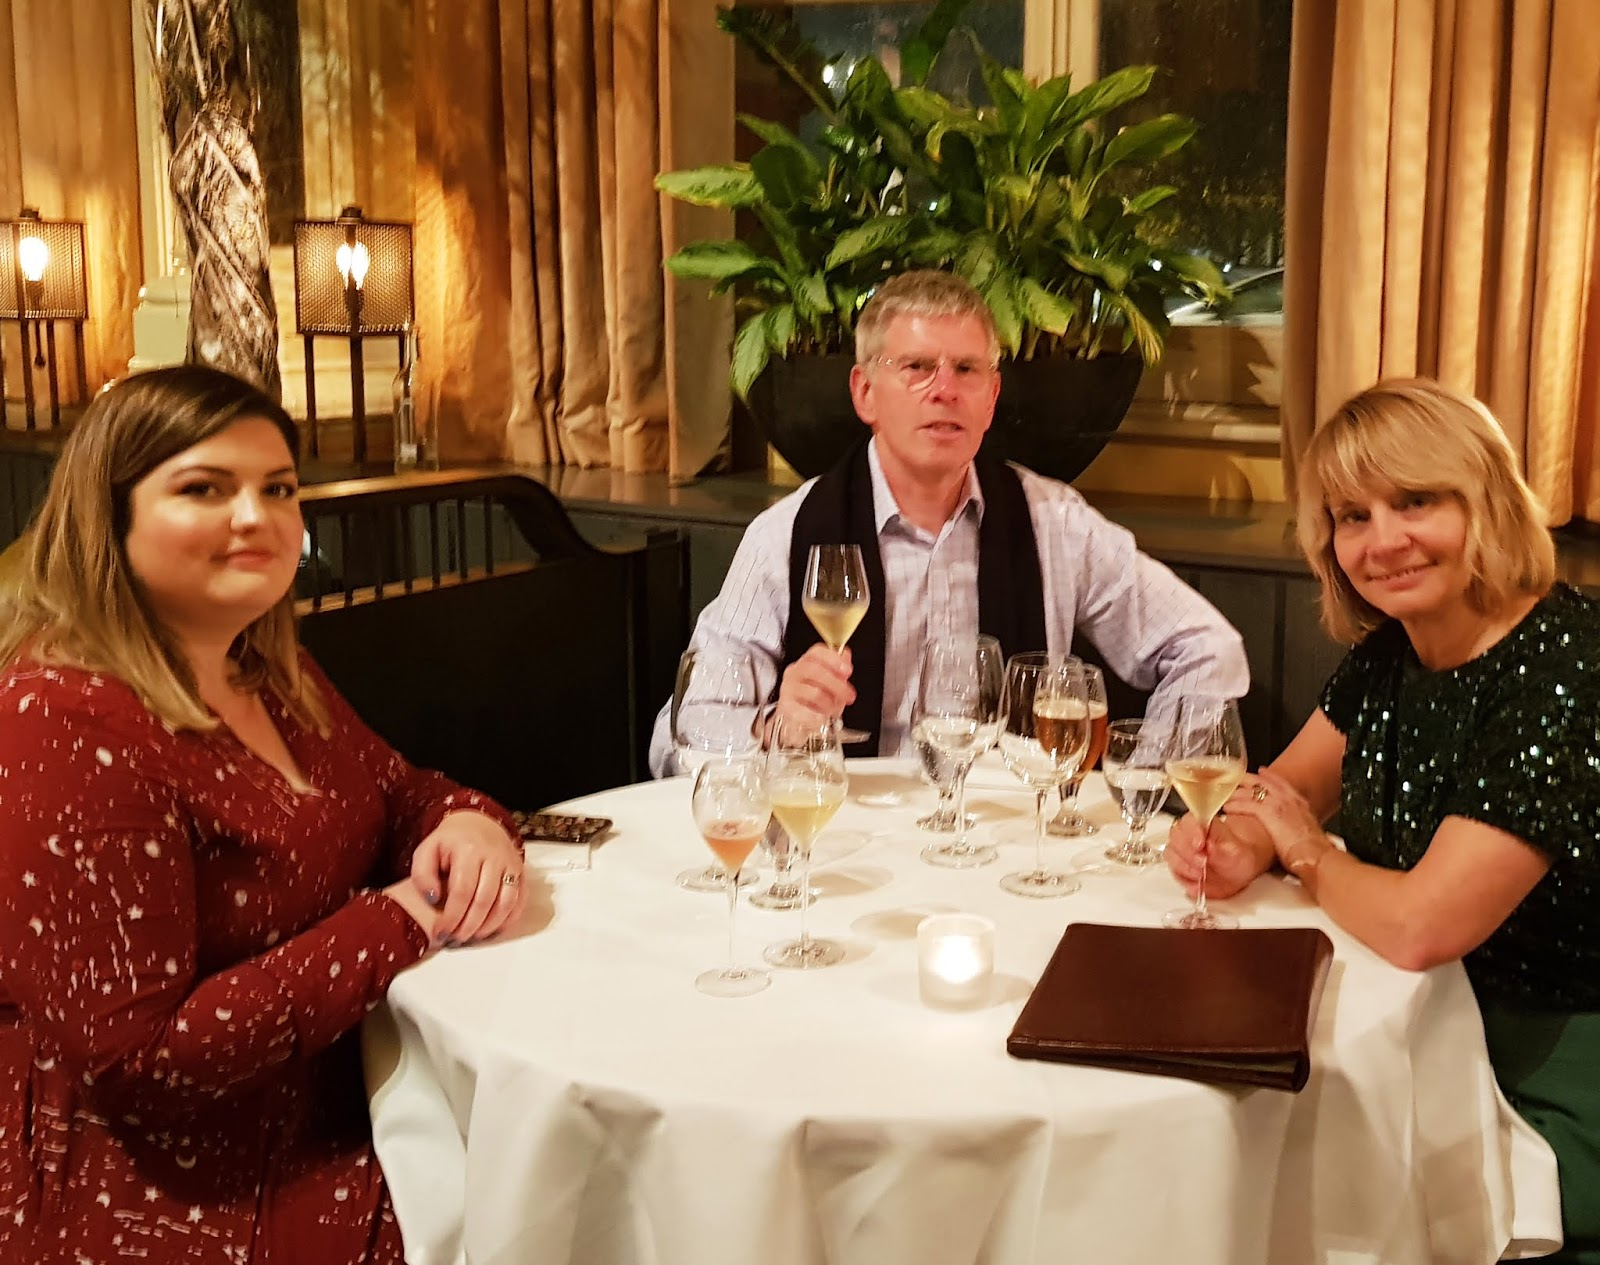 The family of blogger Is This Mutton at The Gilbert Scott restaurant in London